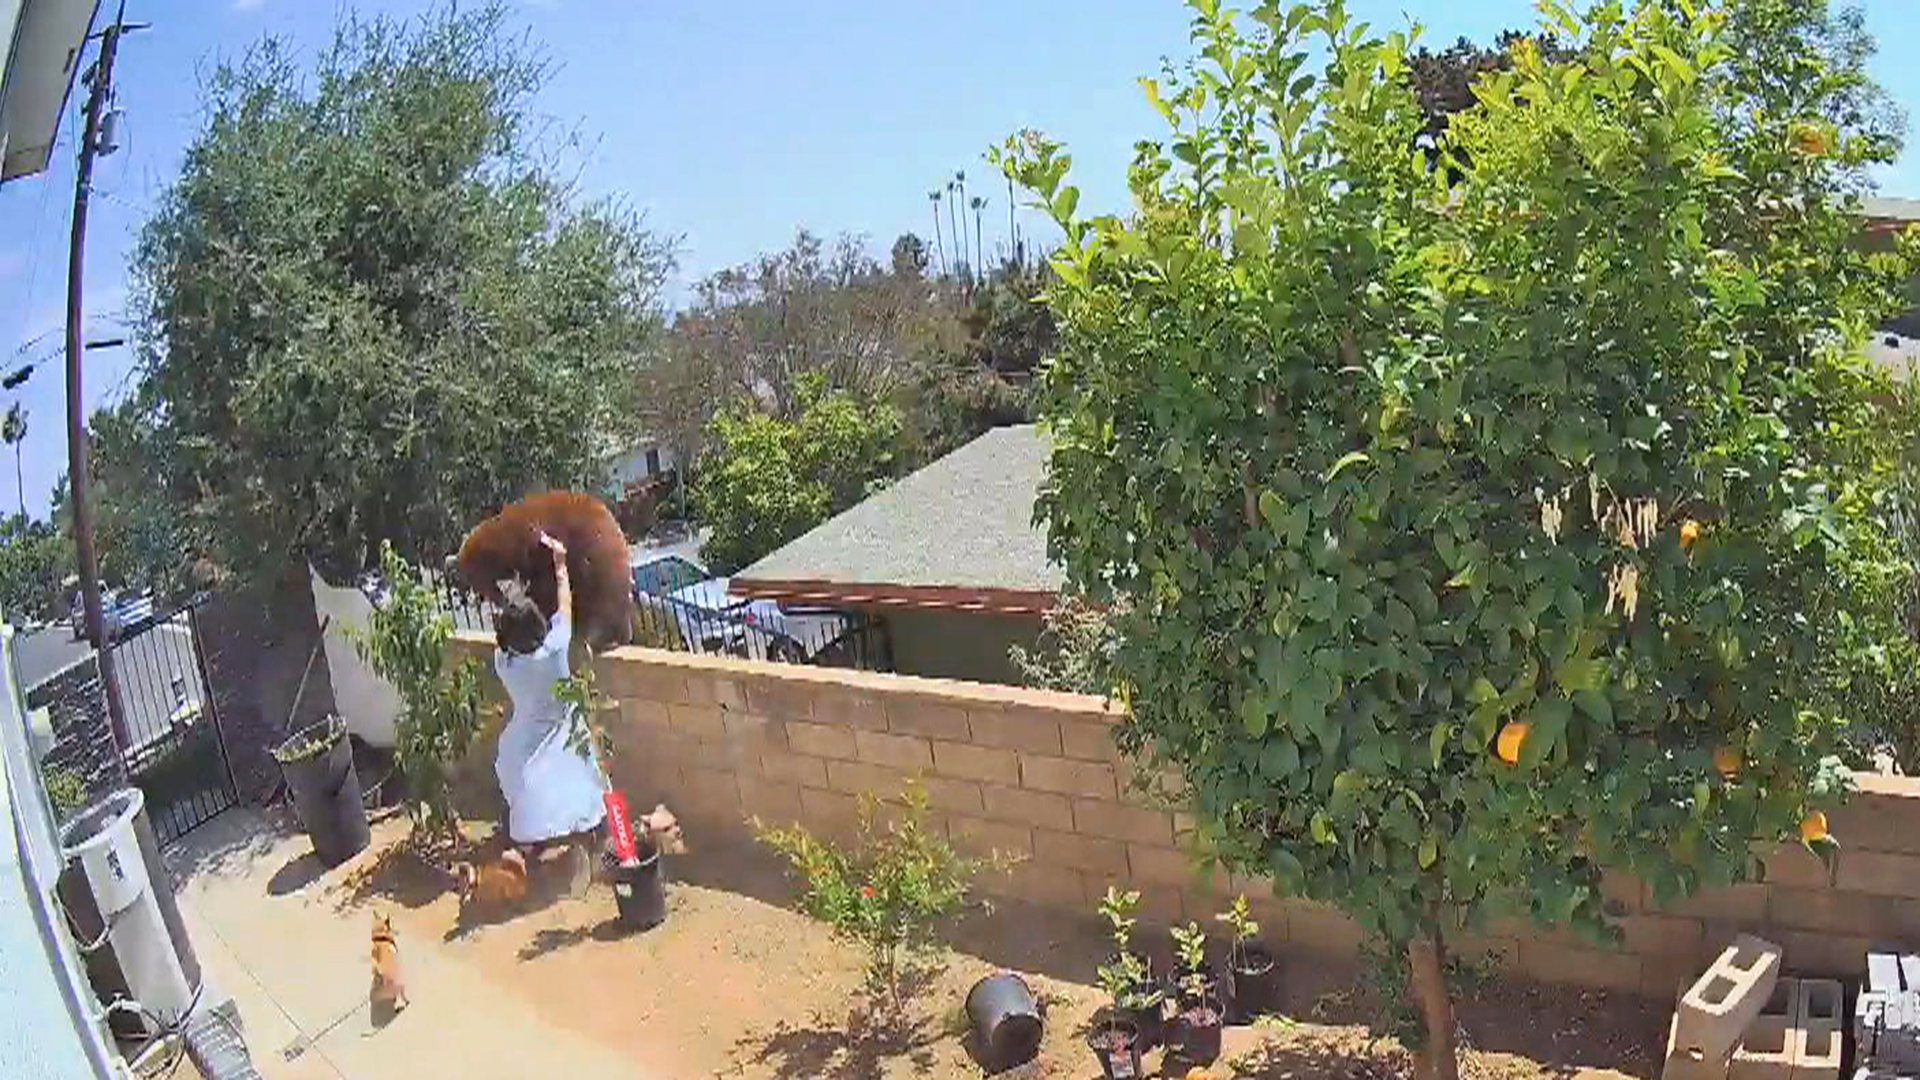 a statue of a person in a garden: Viral video that shows a teenager shoving a full-grown bear off a wall in Southern California has been nearly 70 million times on TikTok alone. NBC's Gadi Schwartz reports for TODAY from Los Angeles.